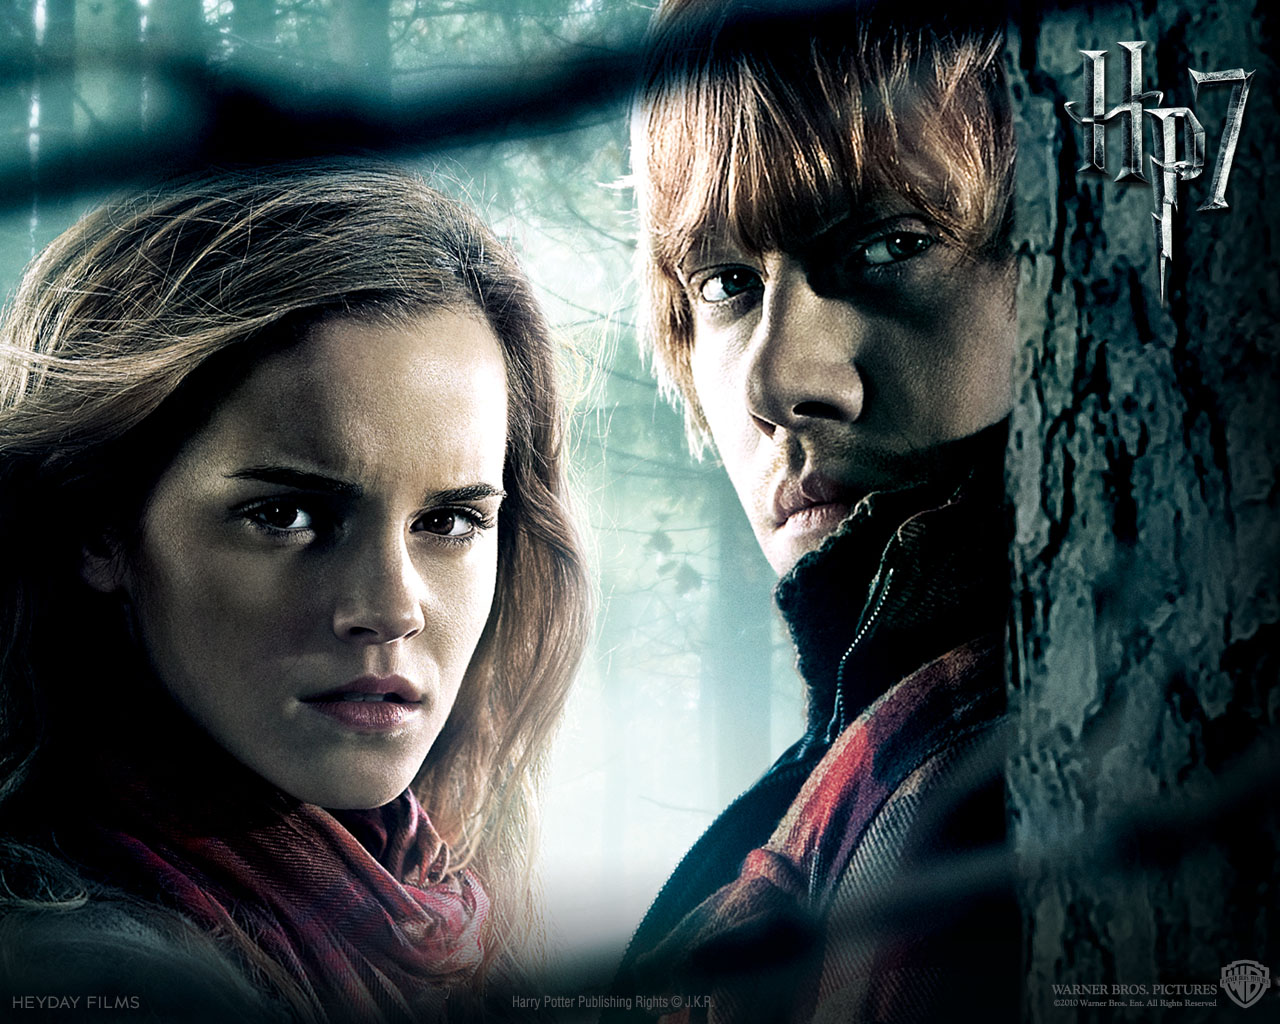 http://2.bp.blogspot.com/-DeFSBv6E28I/TbmKqtAoFGI/AAAAAAAAC4c/Ga9iIPJmp58/s1600/Harry_Potter_and_the_Deathly_Hallows_Part_2%2B%25288%2529.jpg